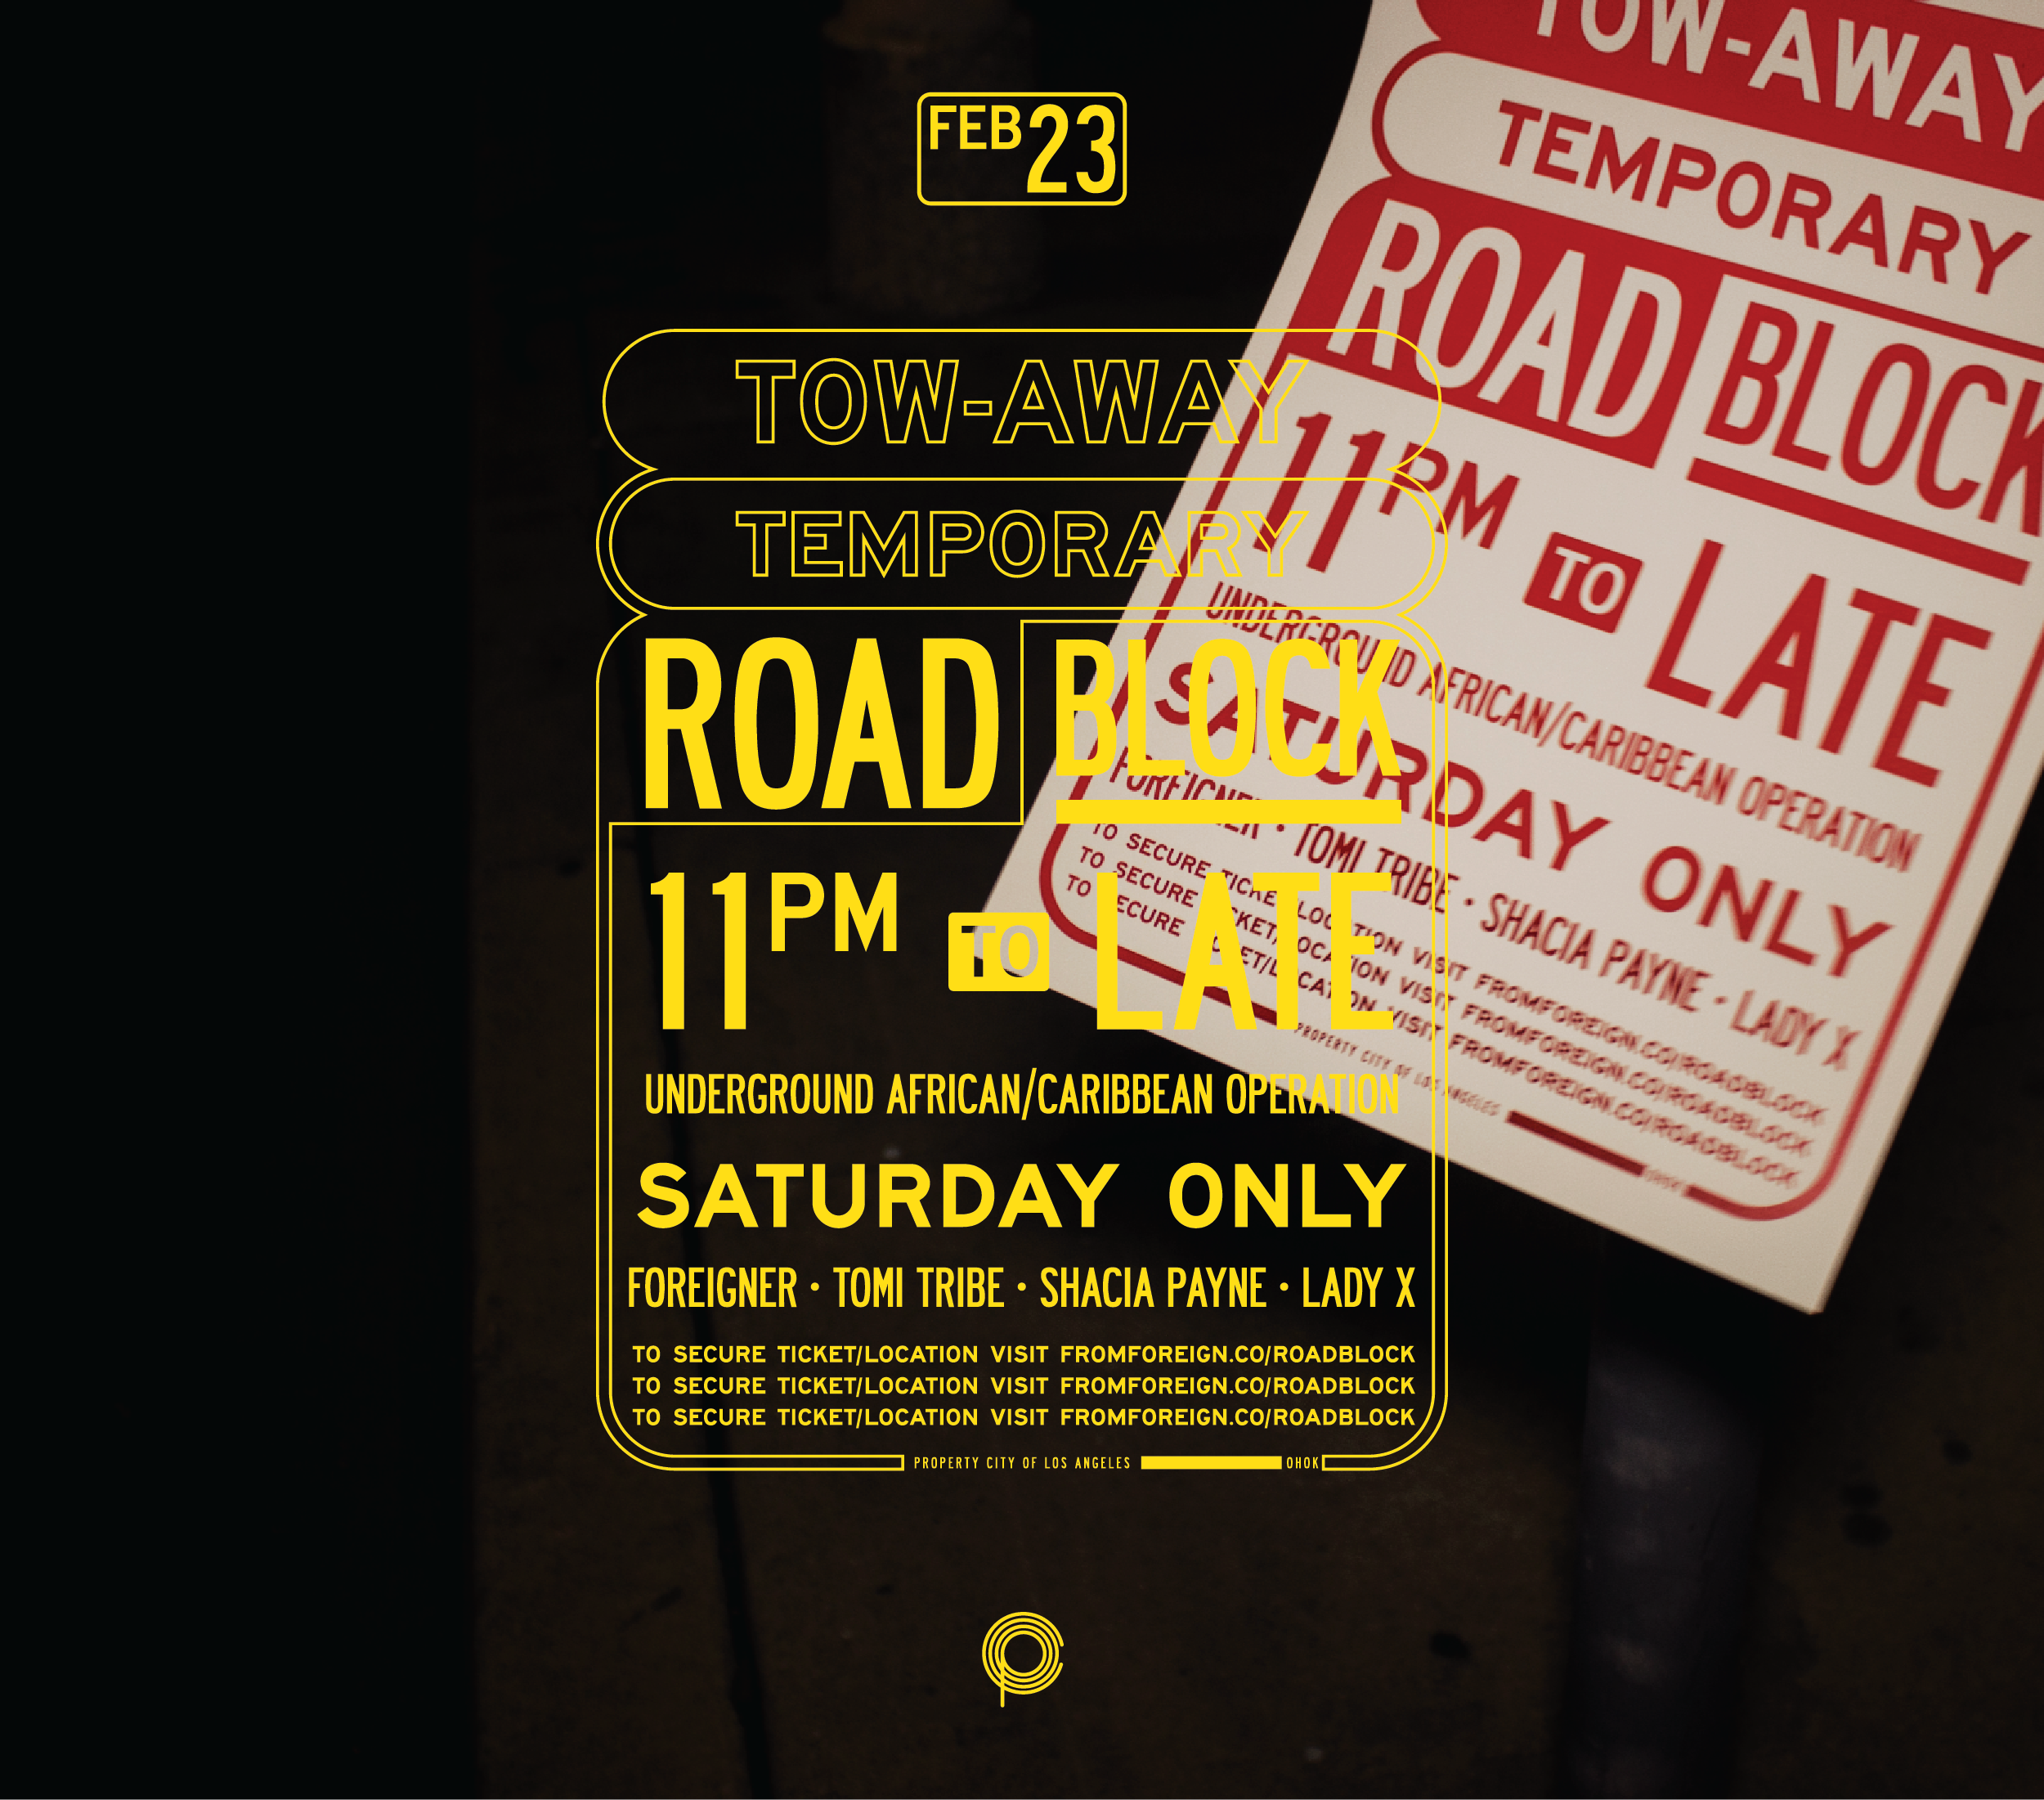 roadblock art - yellow feed-03.png